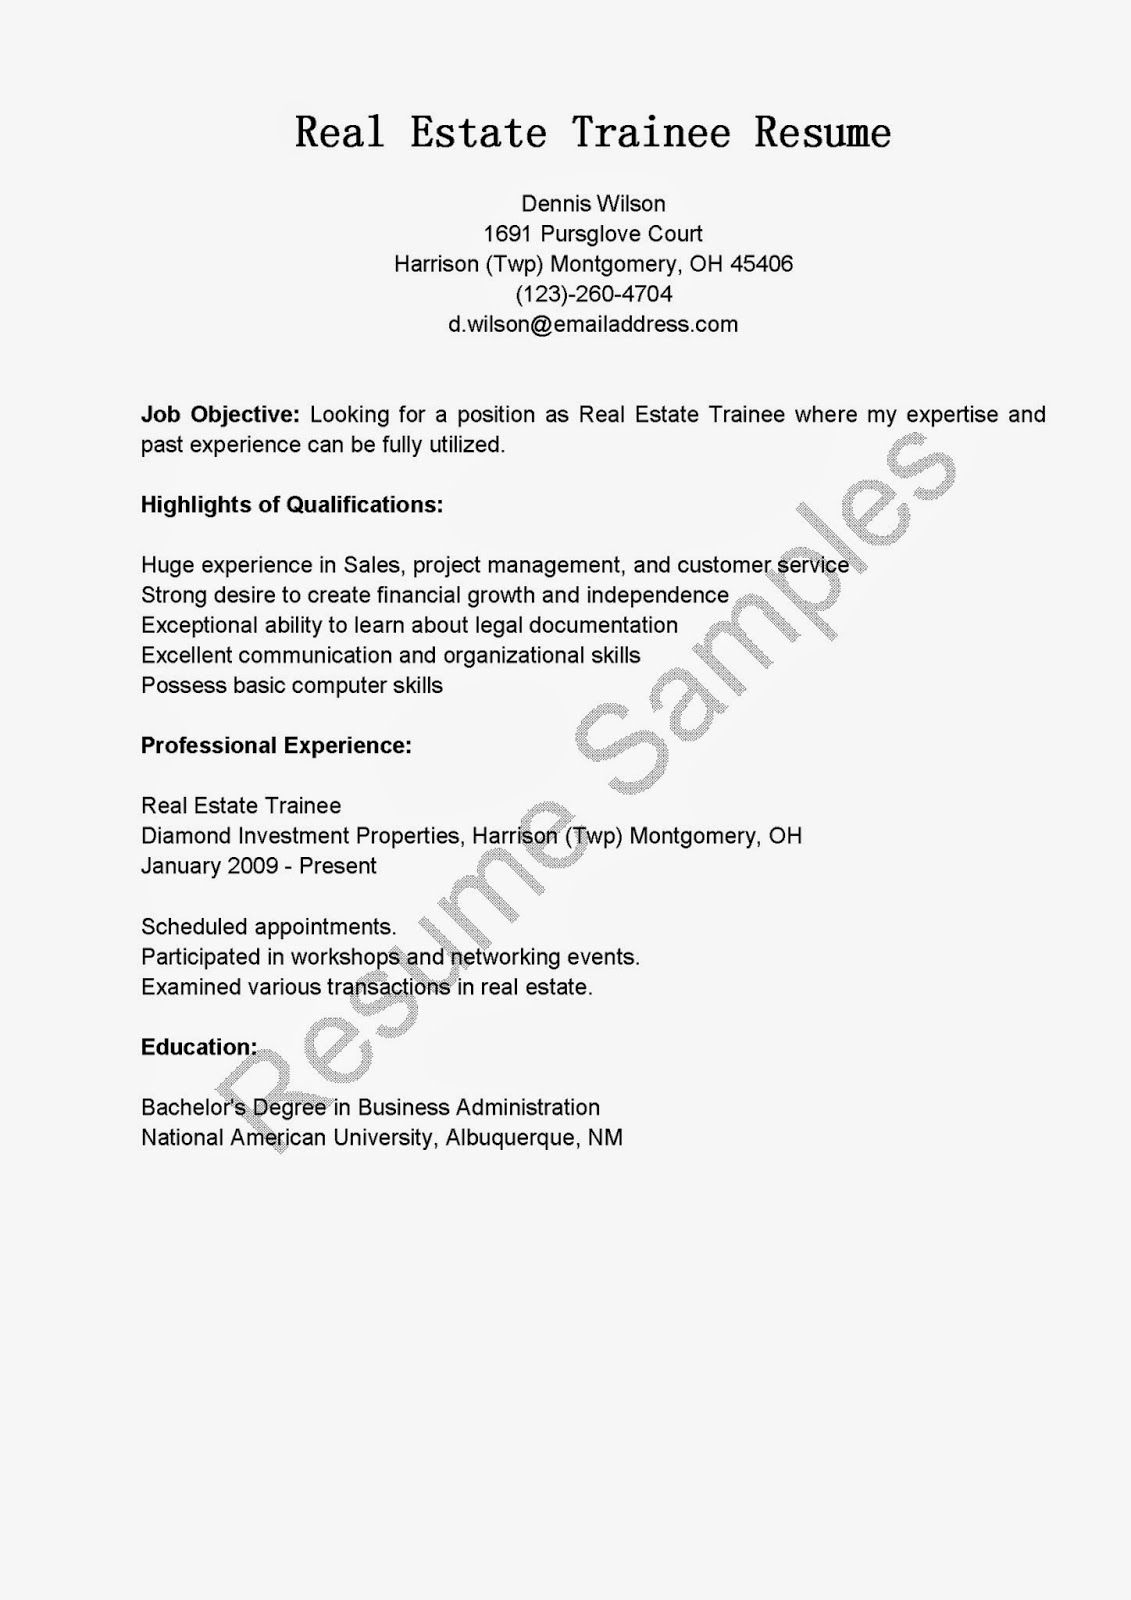 Real Estate Trainee Resume Sample Resume Samples  Resame